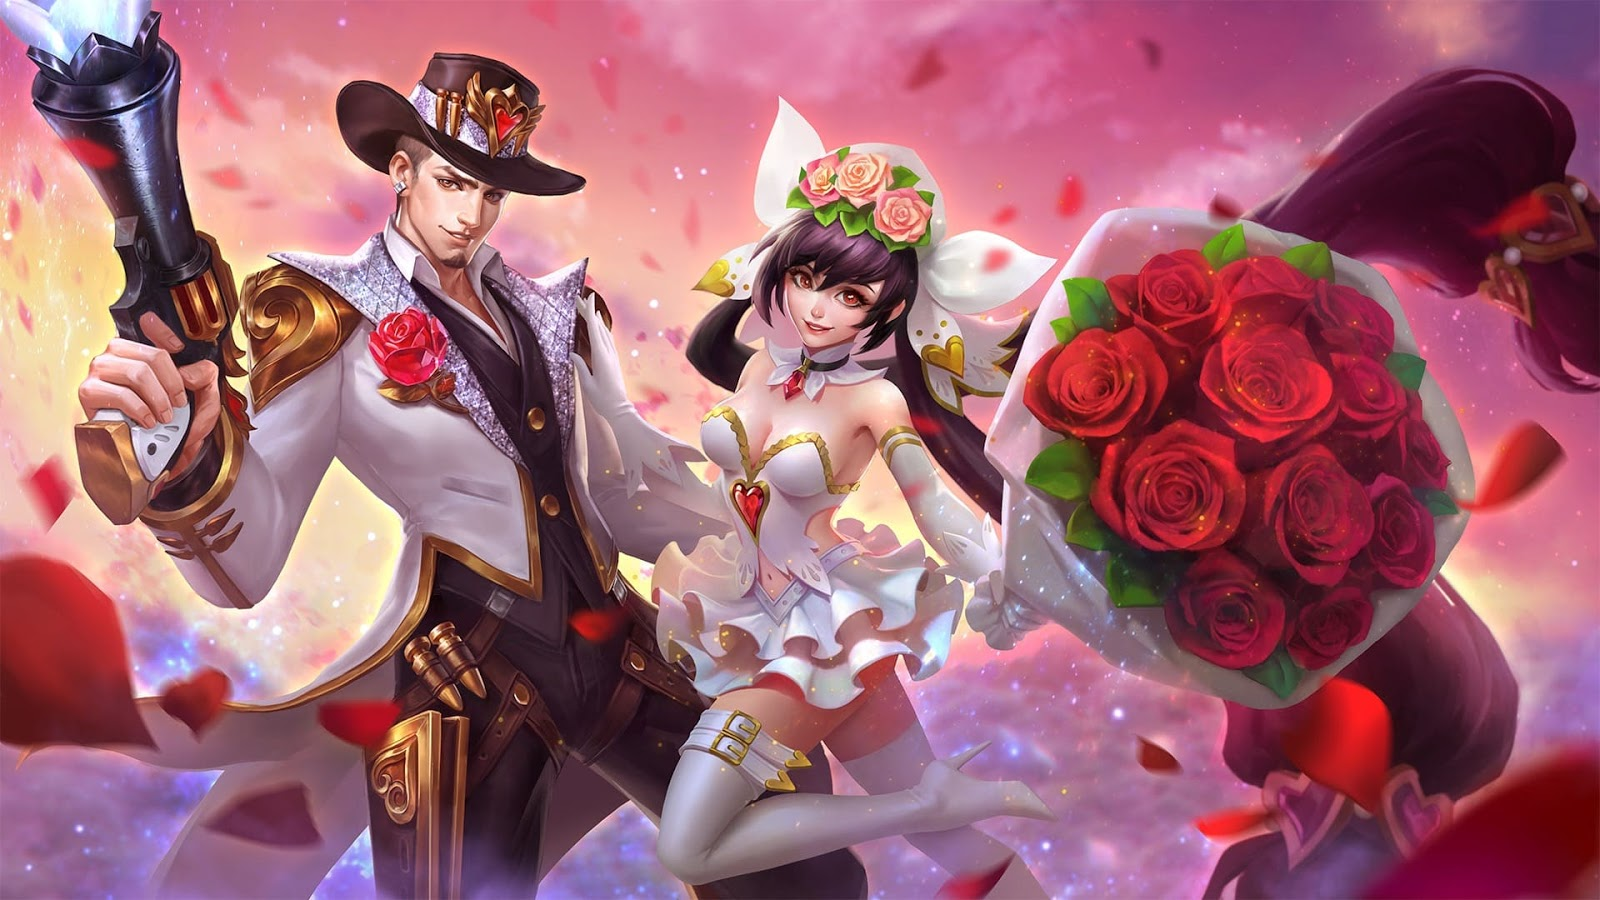 Wallpaper Clint Guns and Roses and Layla Cannon and Roses Skin Mobile Legends HD for PC